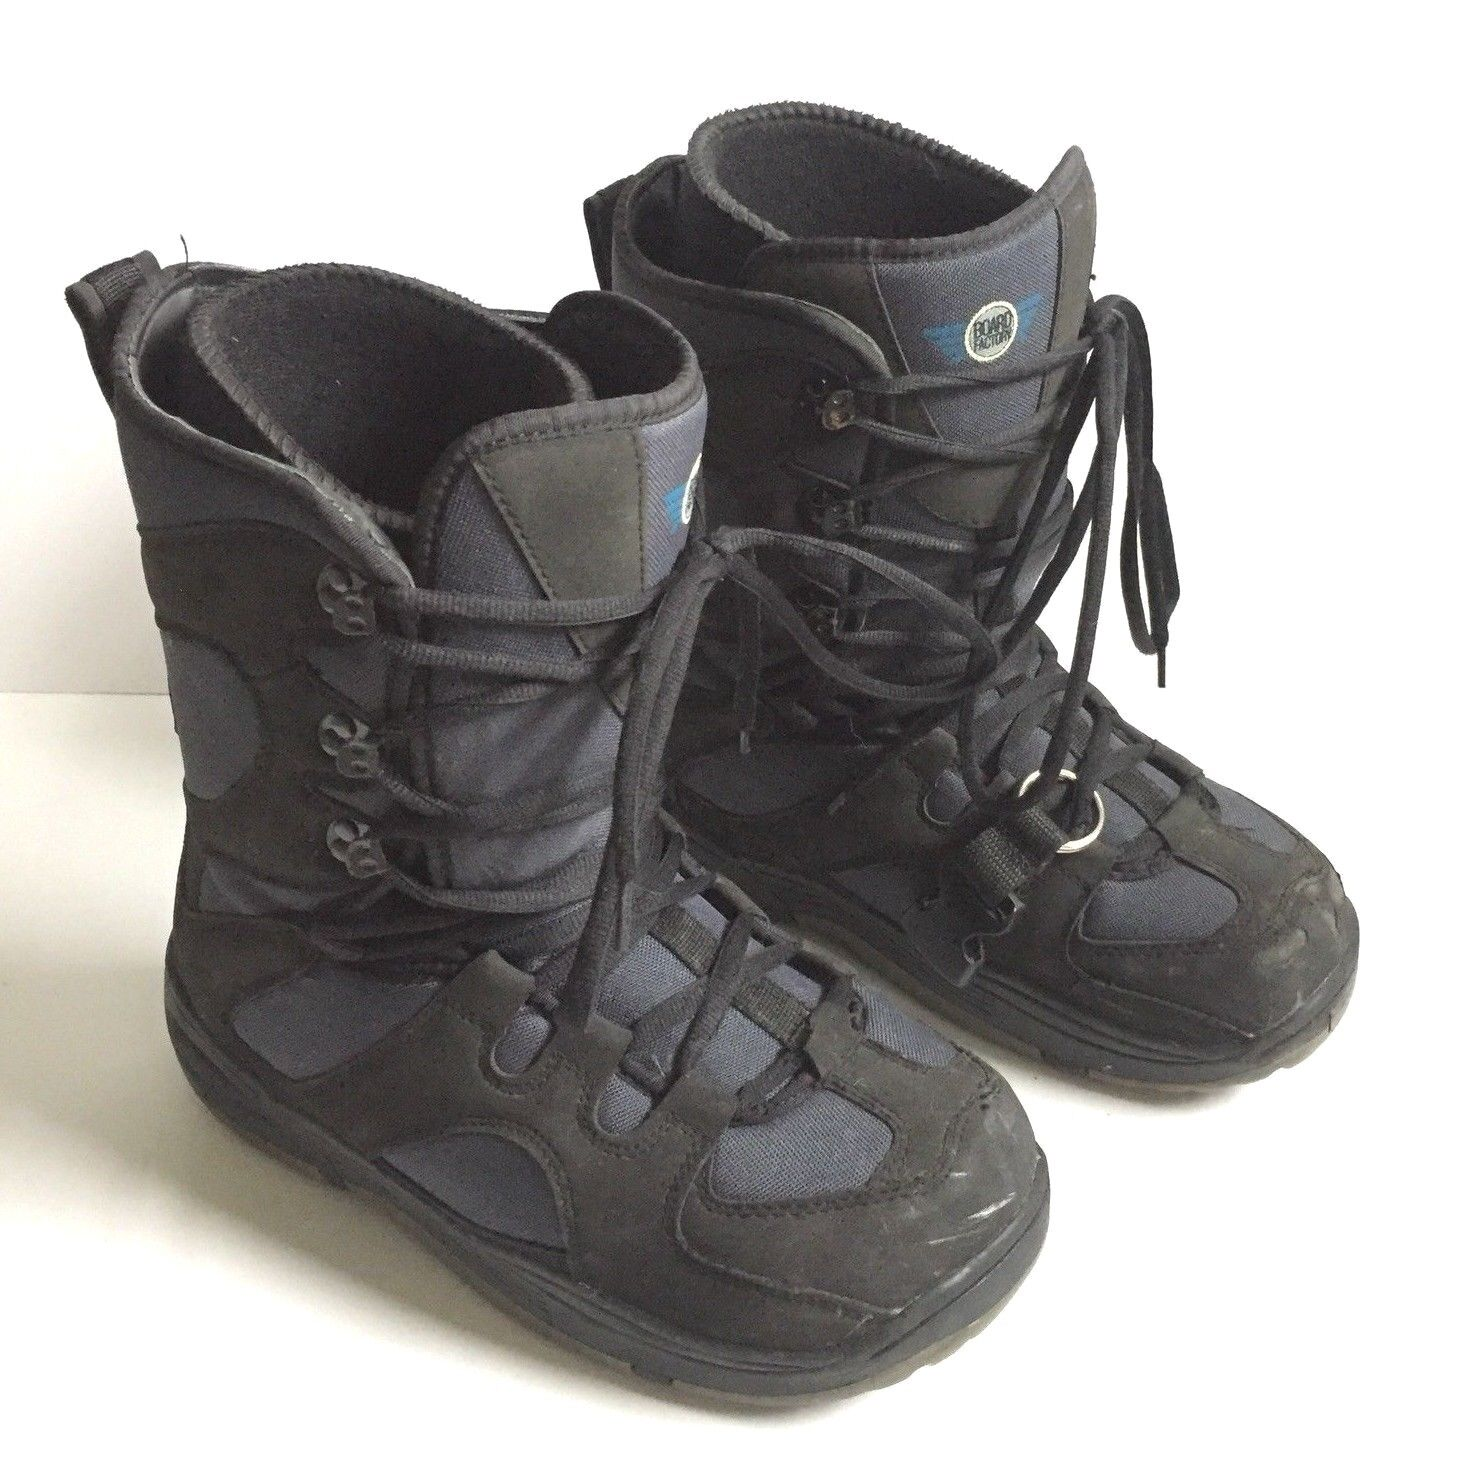 Board  Factory Snowboard Boots - Men's Size 8  incentive promotionals